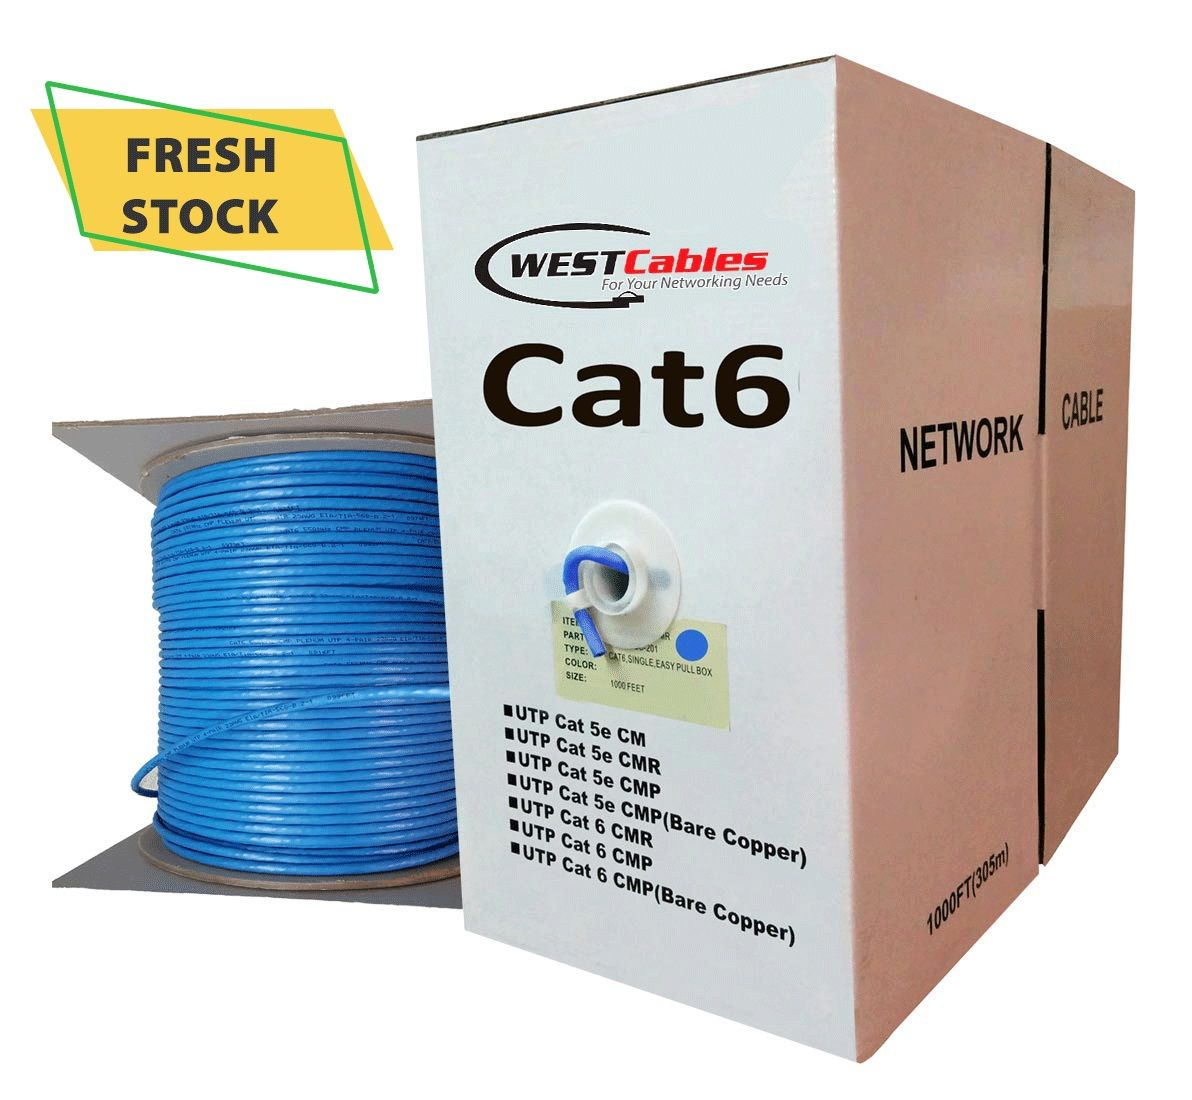 Cat6 Plenum 1000ft Networking Cable Plenum Rated Jacket Indoor Outdoor Cable Networking Cables Network Cable Ethernet Cable